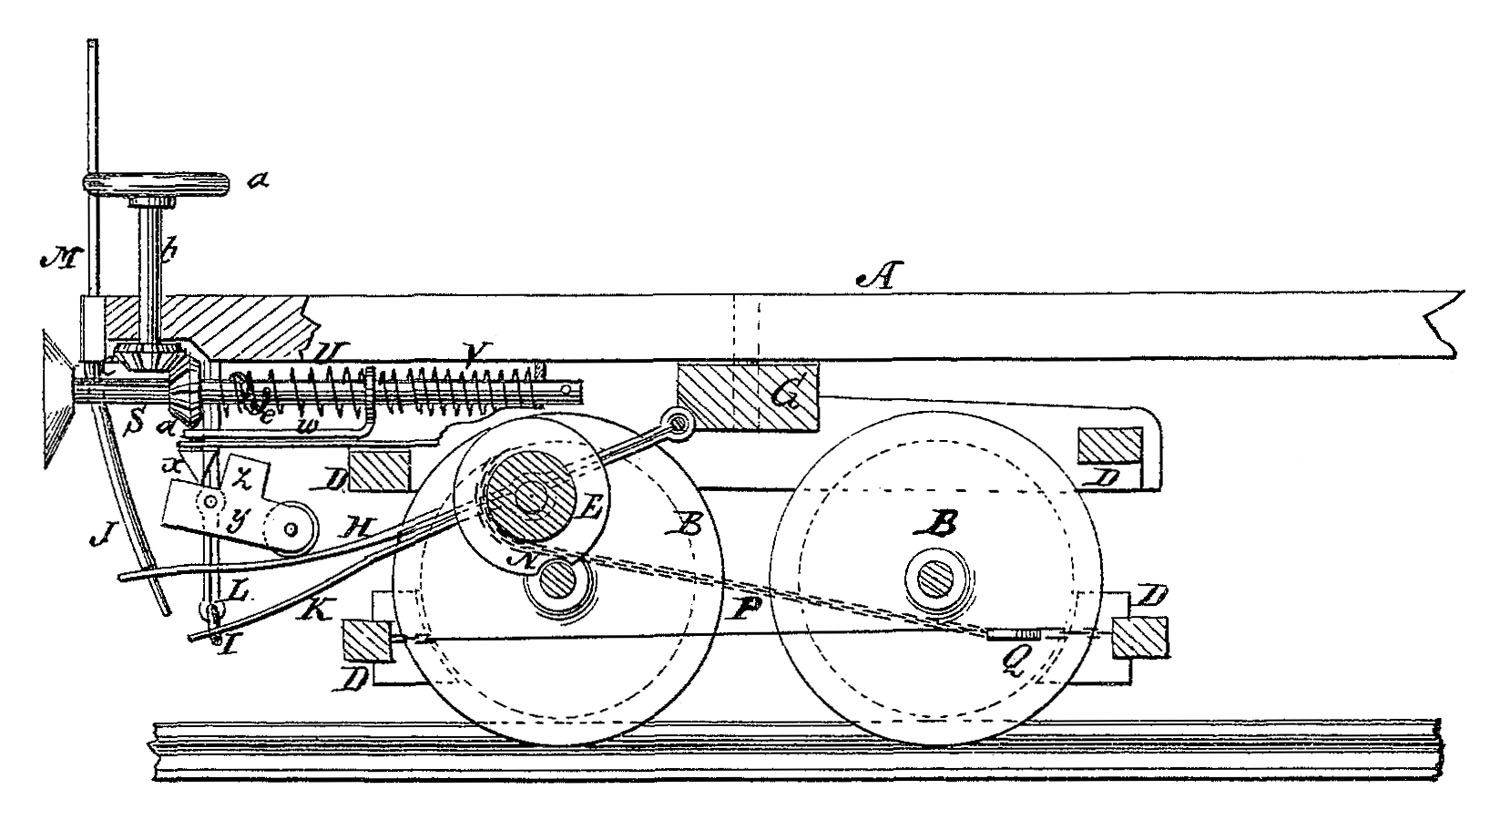 Wrg Art Train Engine Diagram